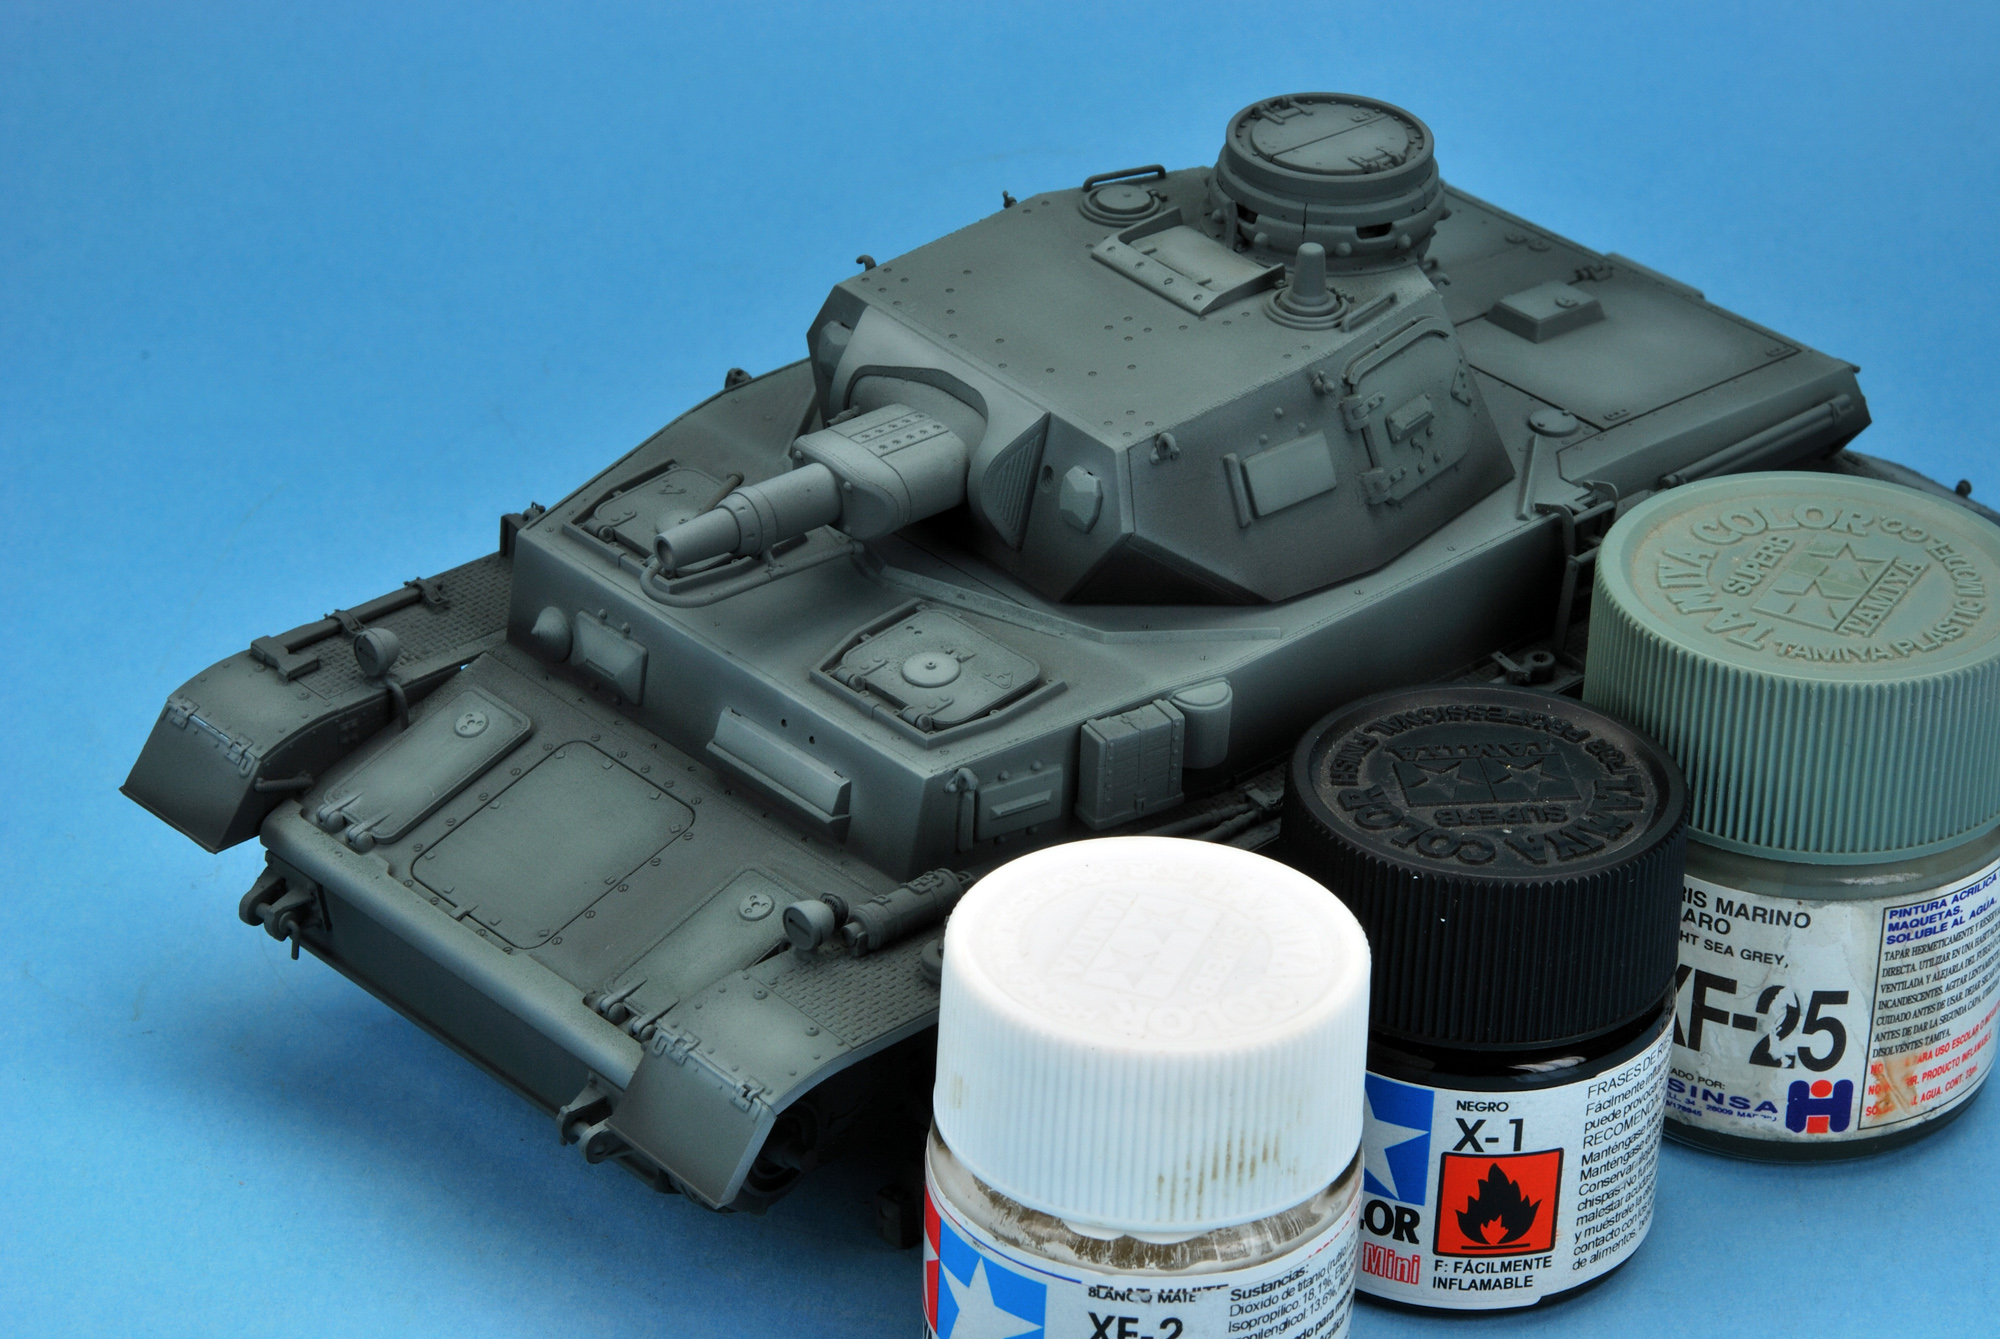 PAINTING THE PZ IV AUSF B